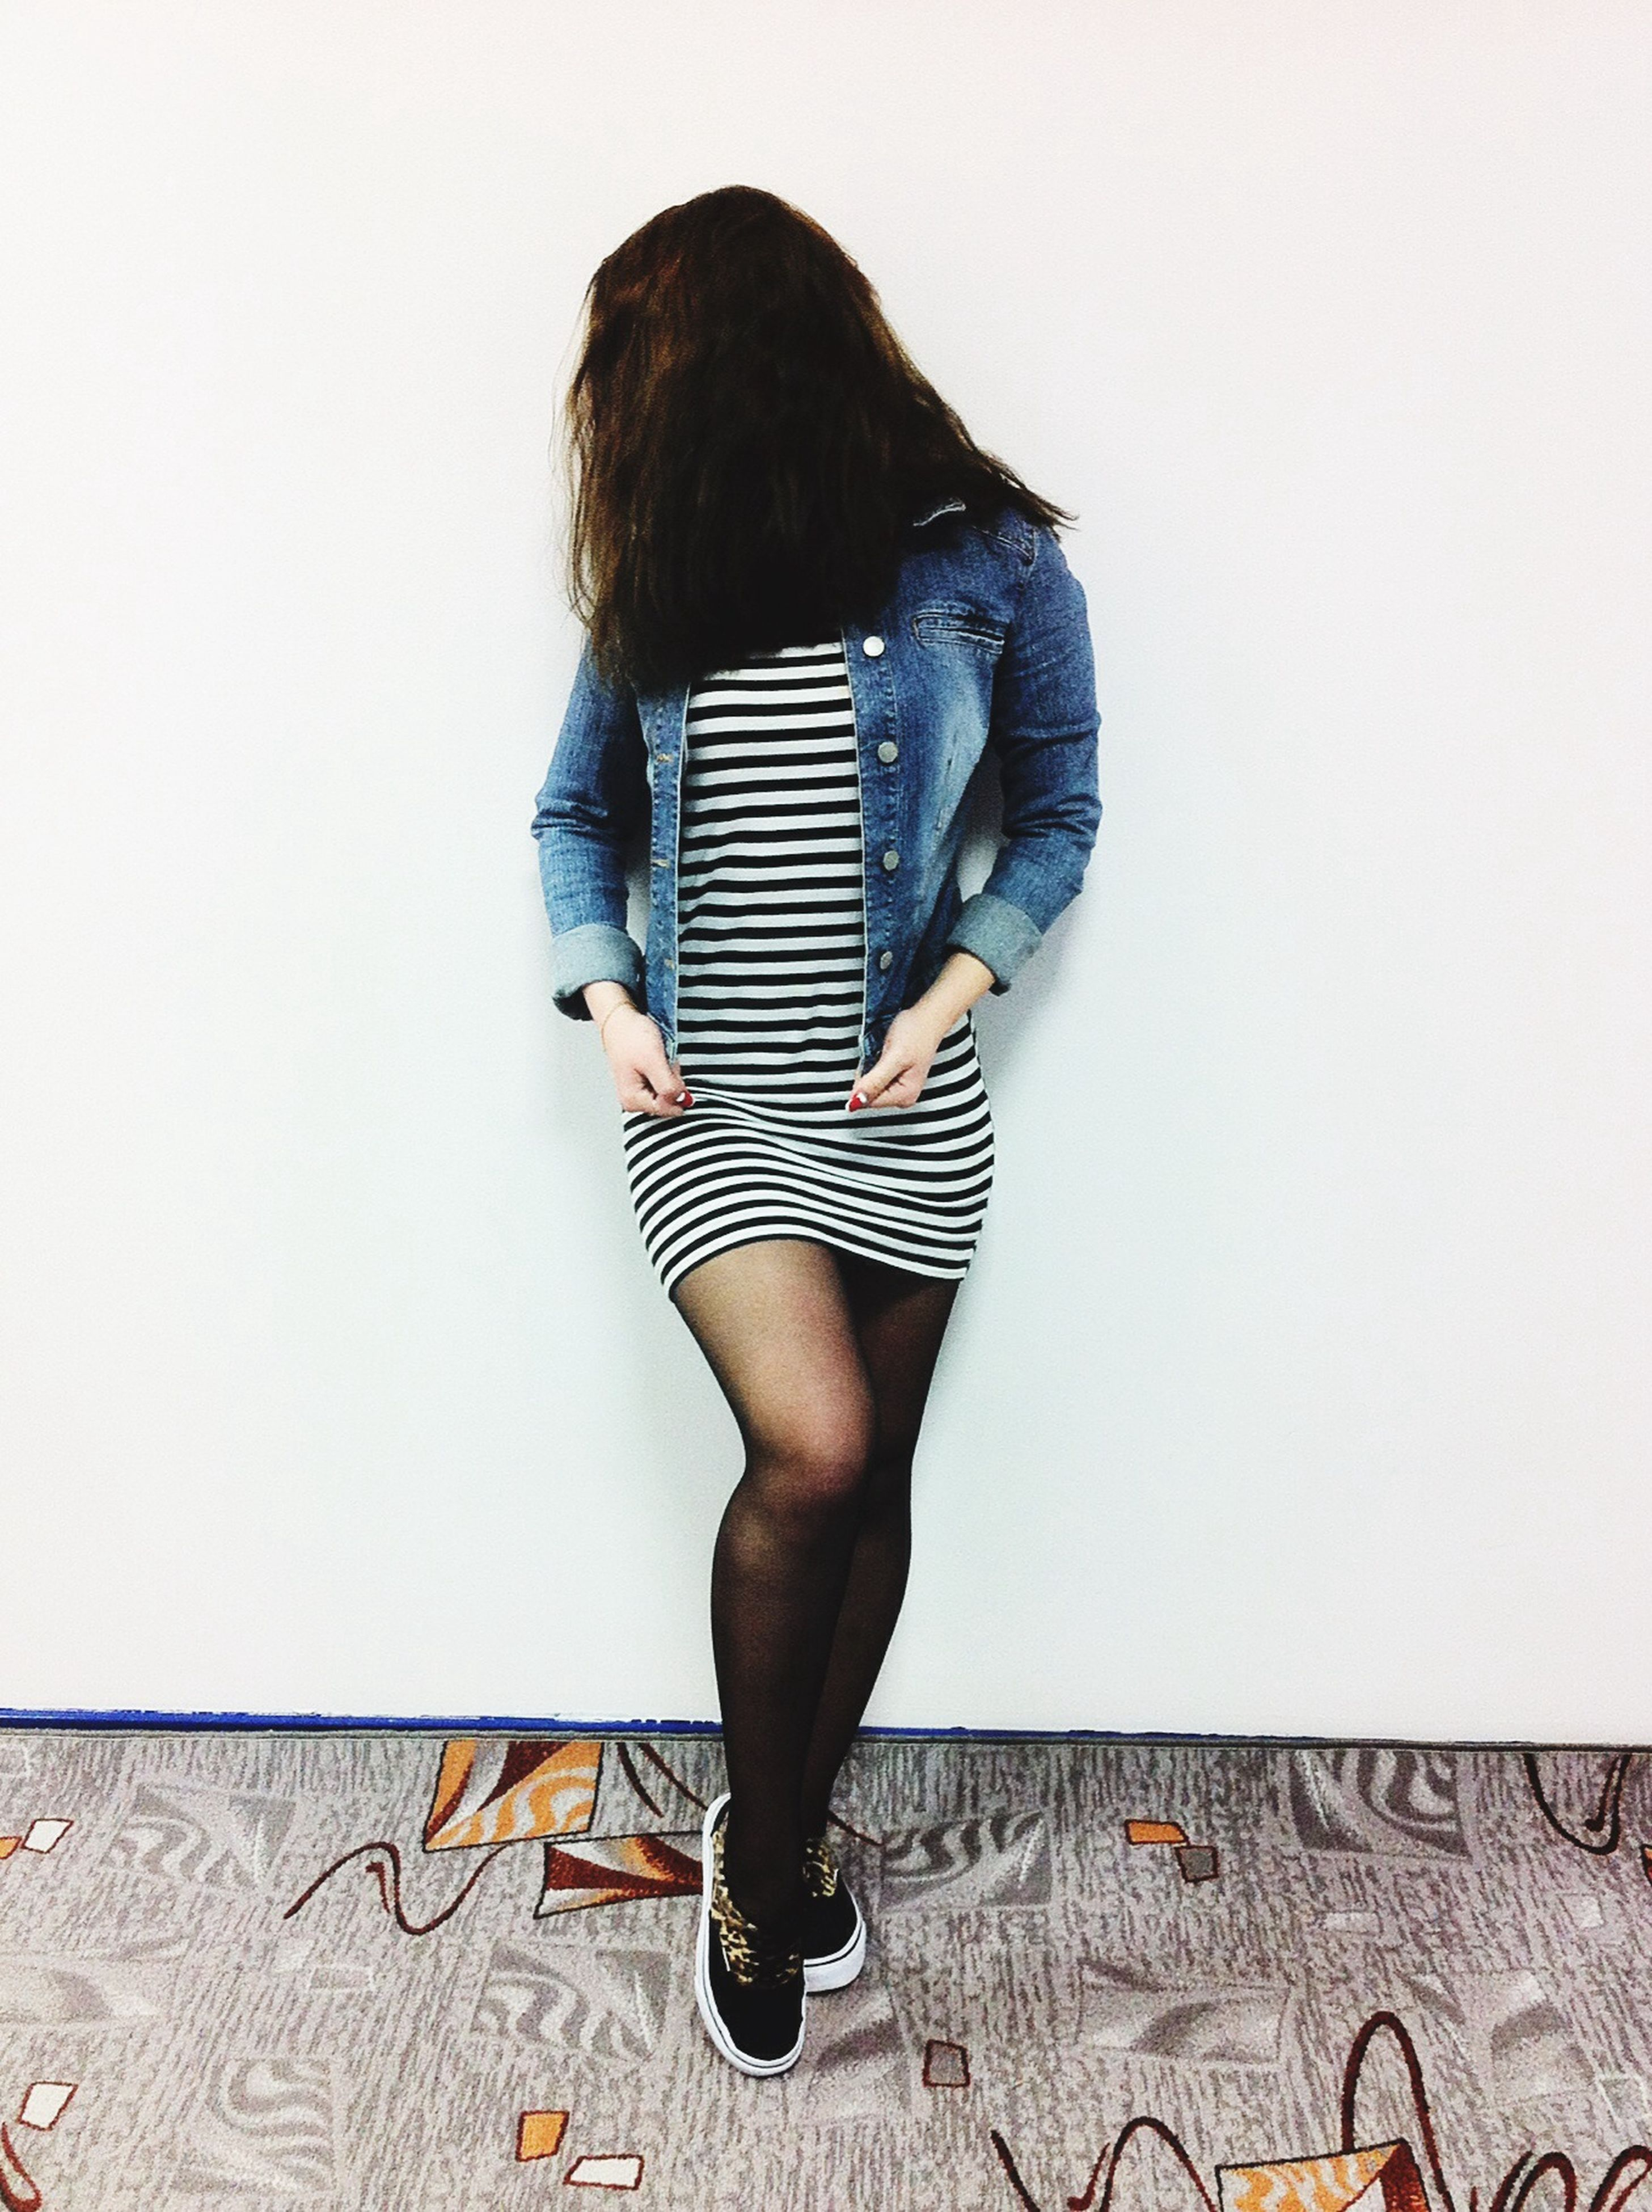 lifestyles, young adult, young women, casual clothing, standing, leisure activity, full length, wall - building feature, long hair, person, three quarter length, front view, fashion, rear view, side view, sensuality